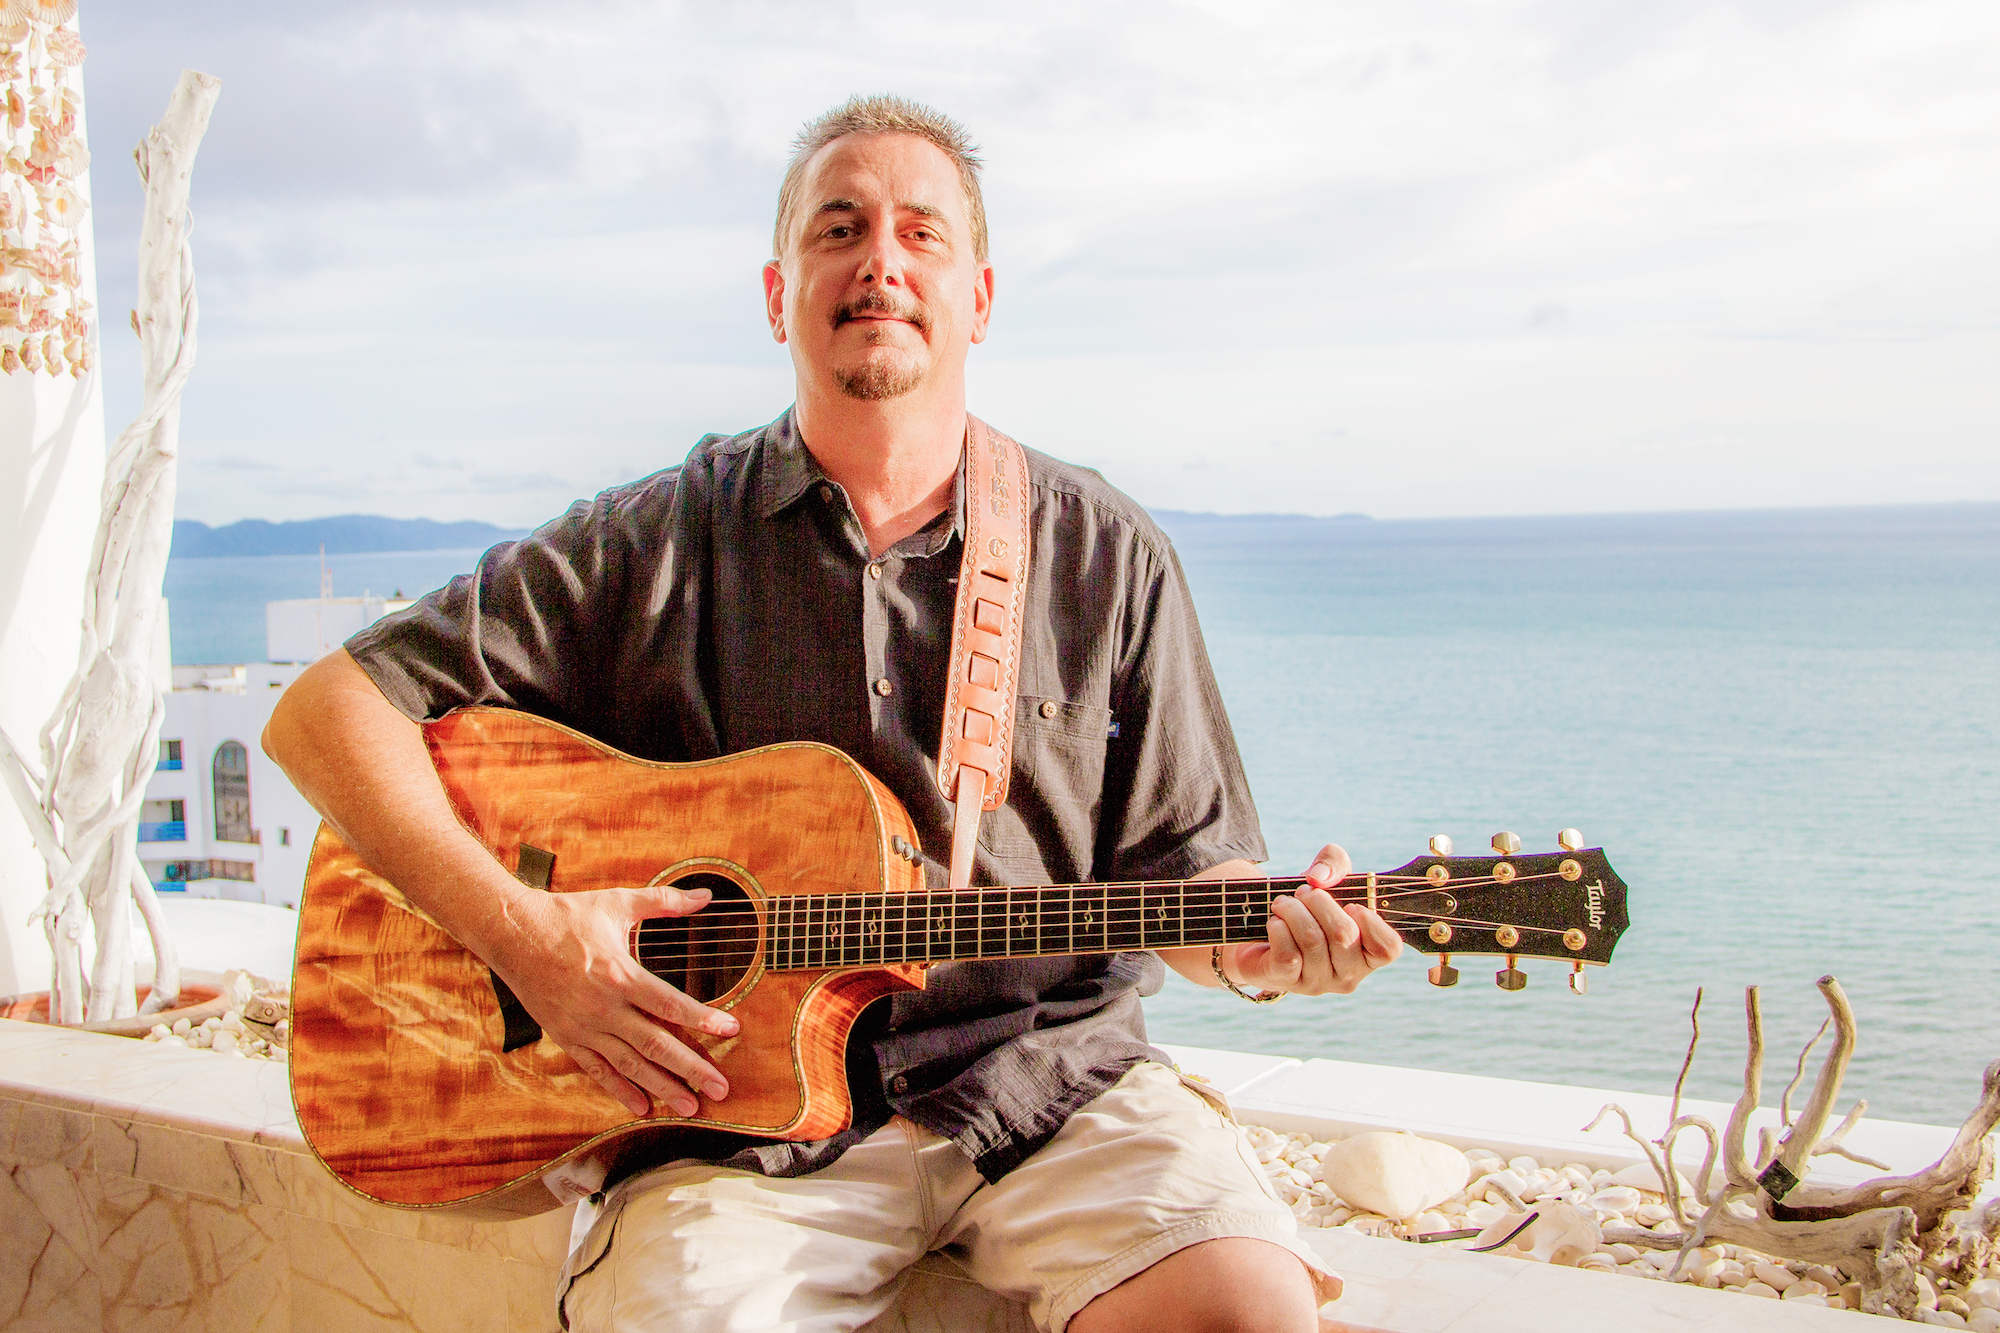 Artist & Song Writer Mike Contoni Shared What He Learned in Music Business Industry